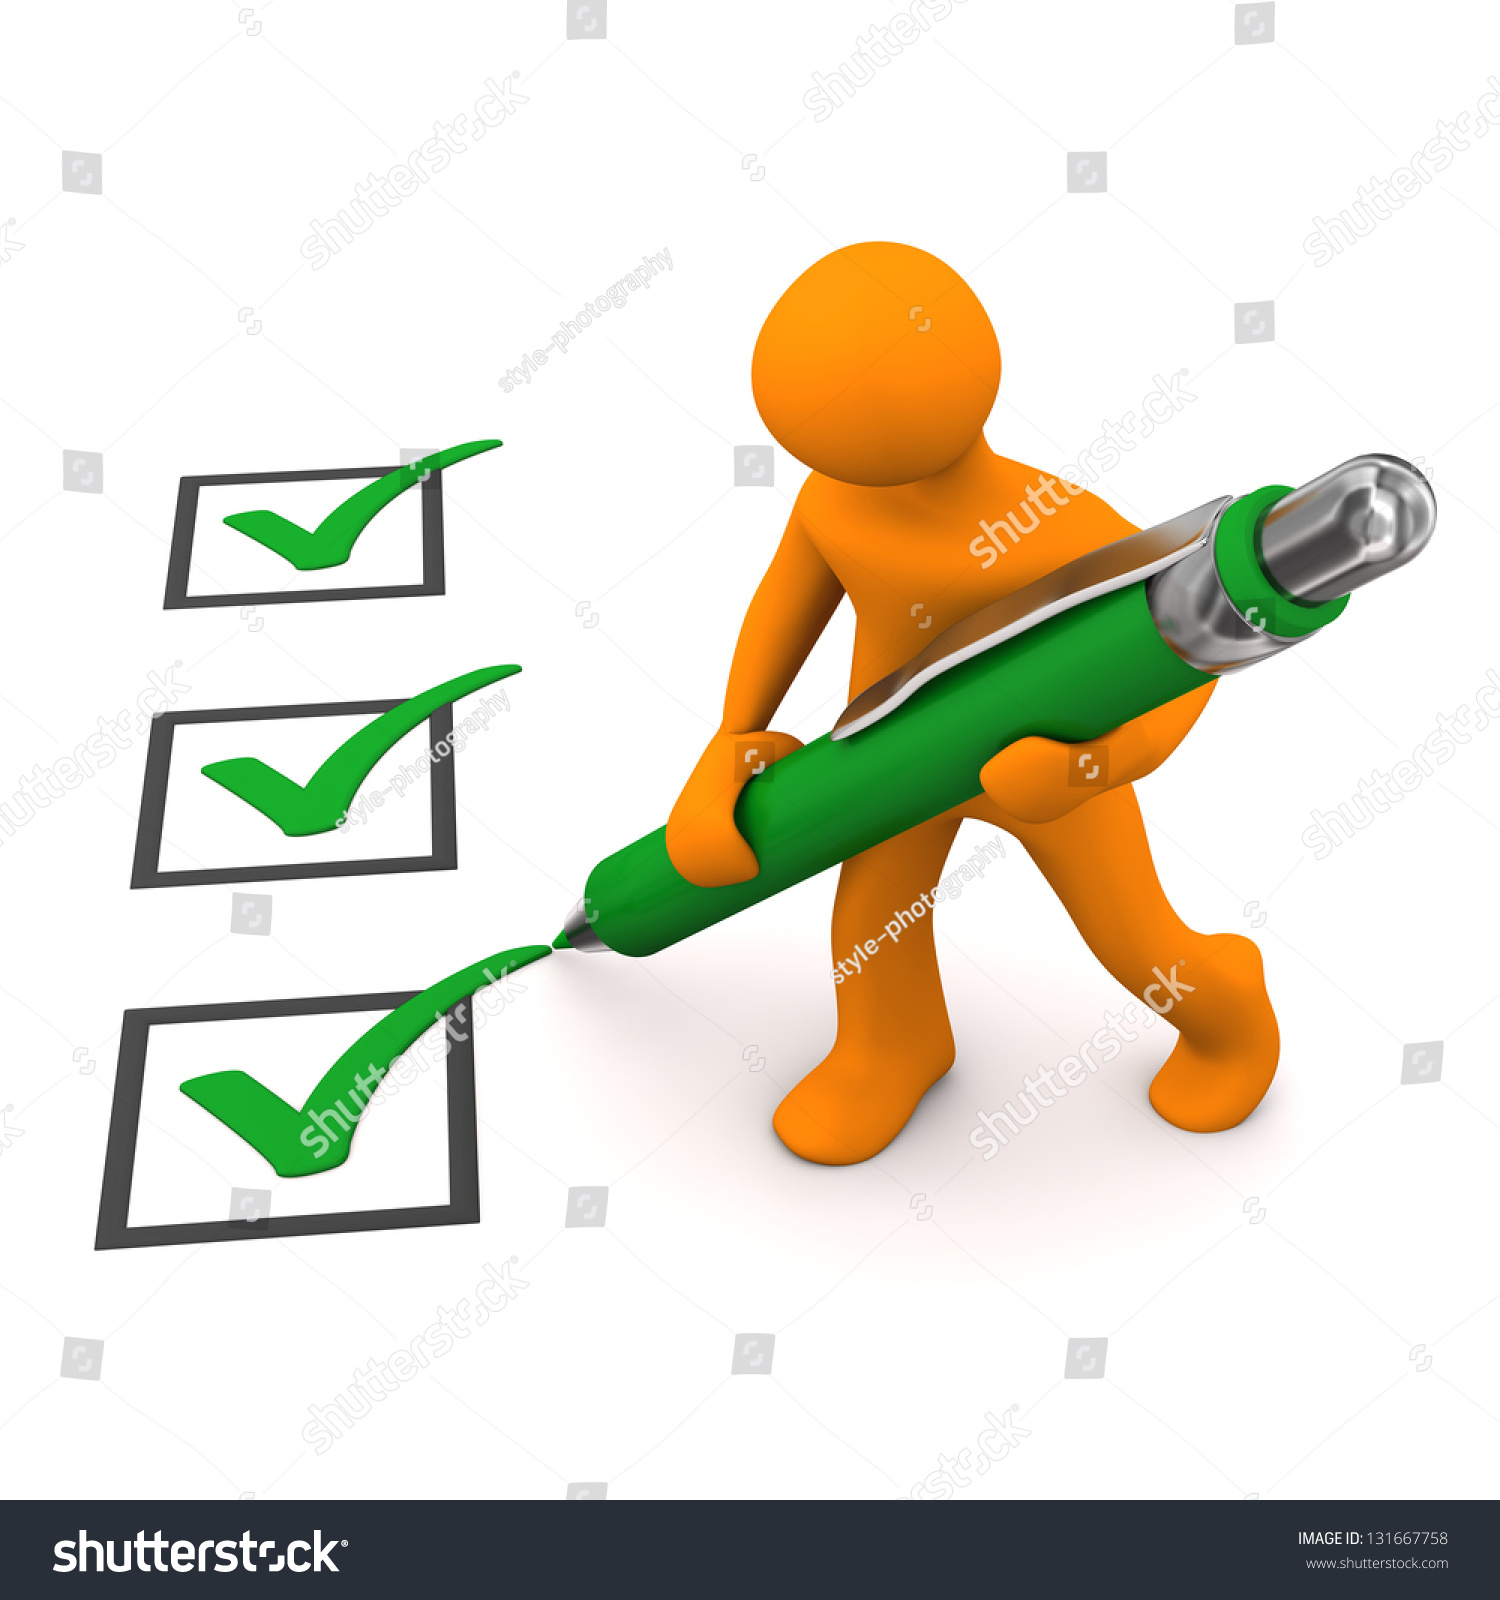 Stock Photo Orange Cartoon Character With Green Checklist And Ballpen on Green Spiral Book